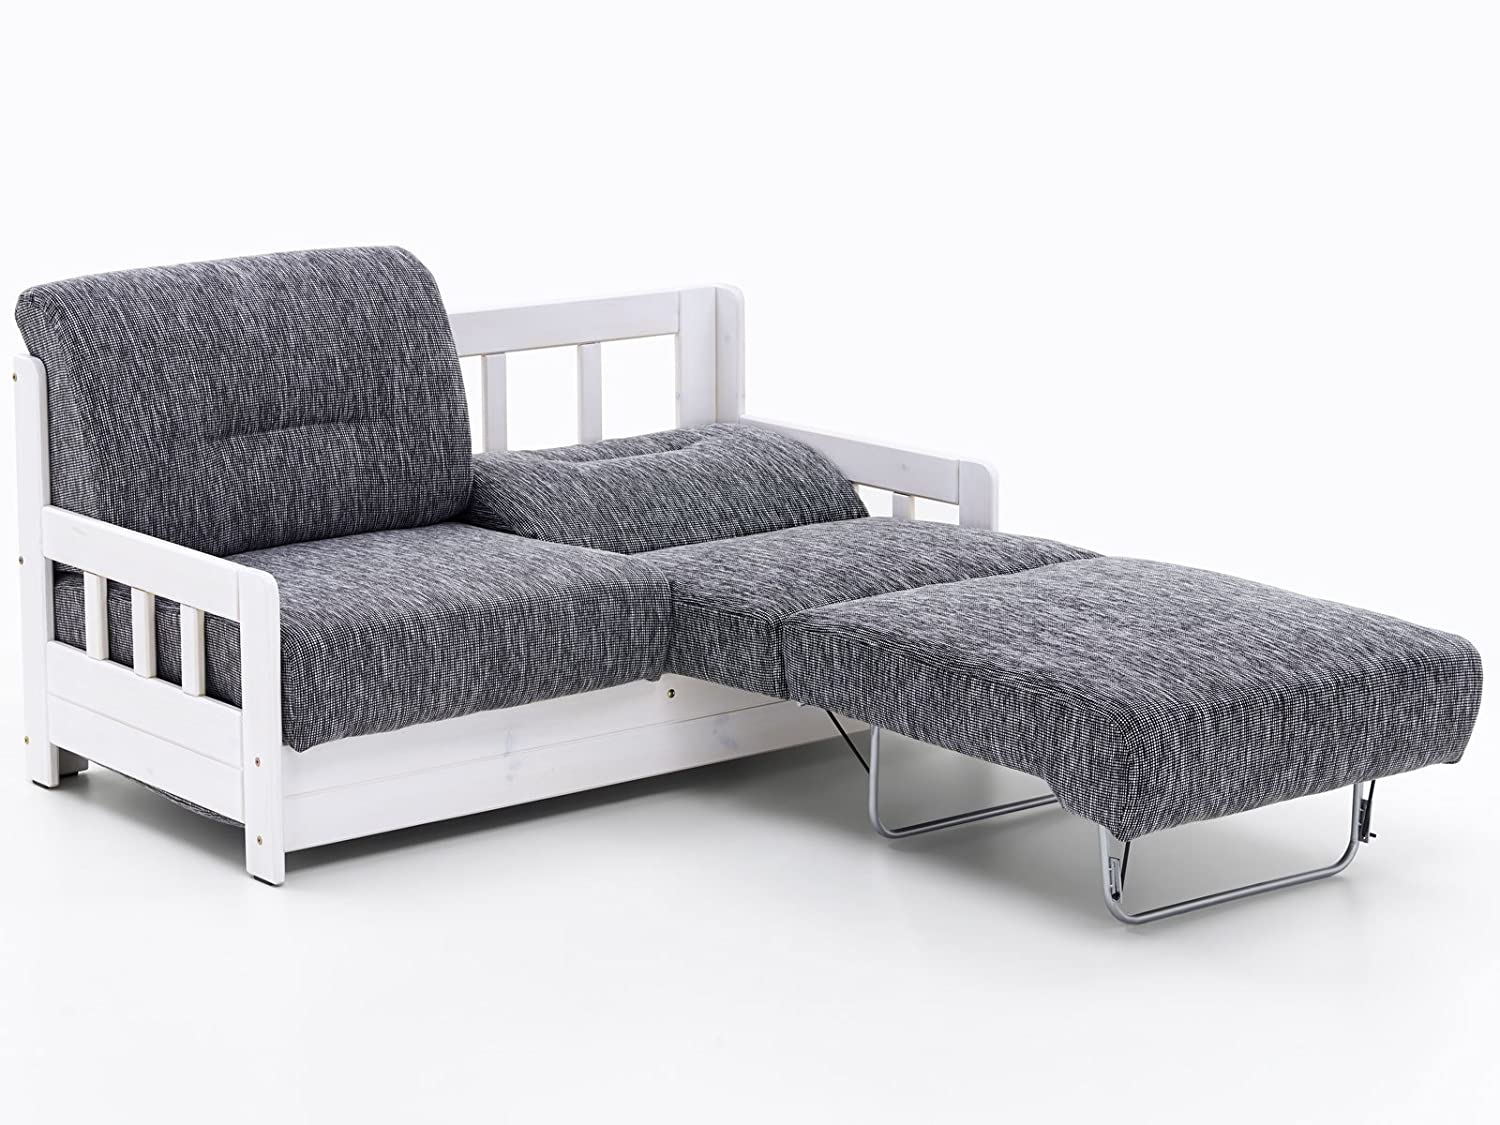 Schlafsofa jugendzimmer bunt  Sofas & Couches | Amazon.de